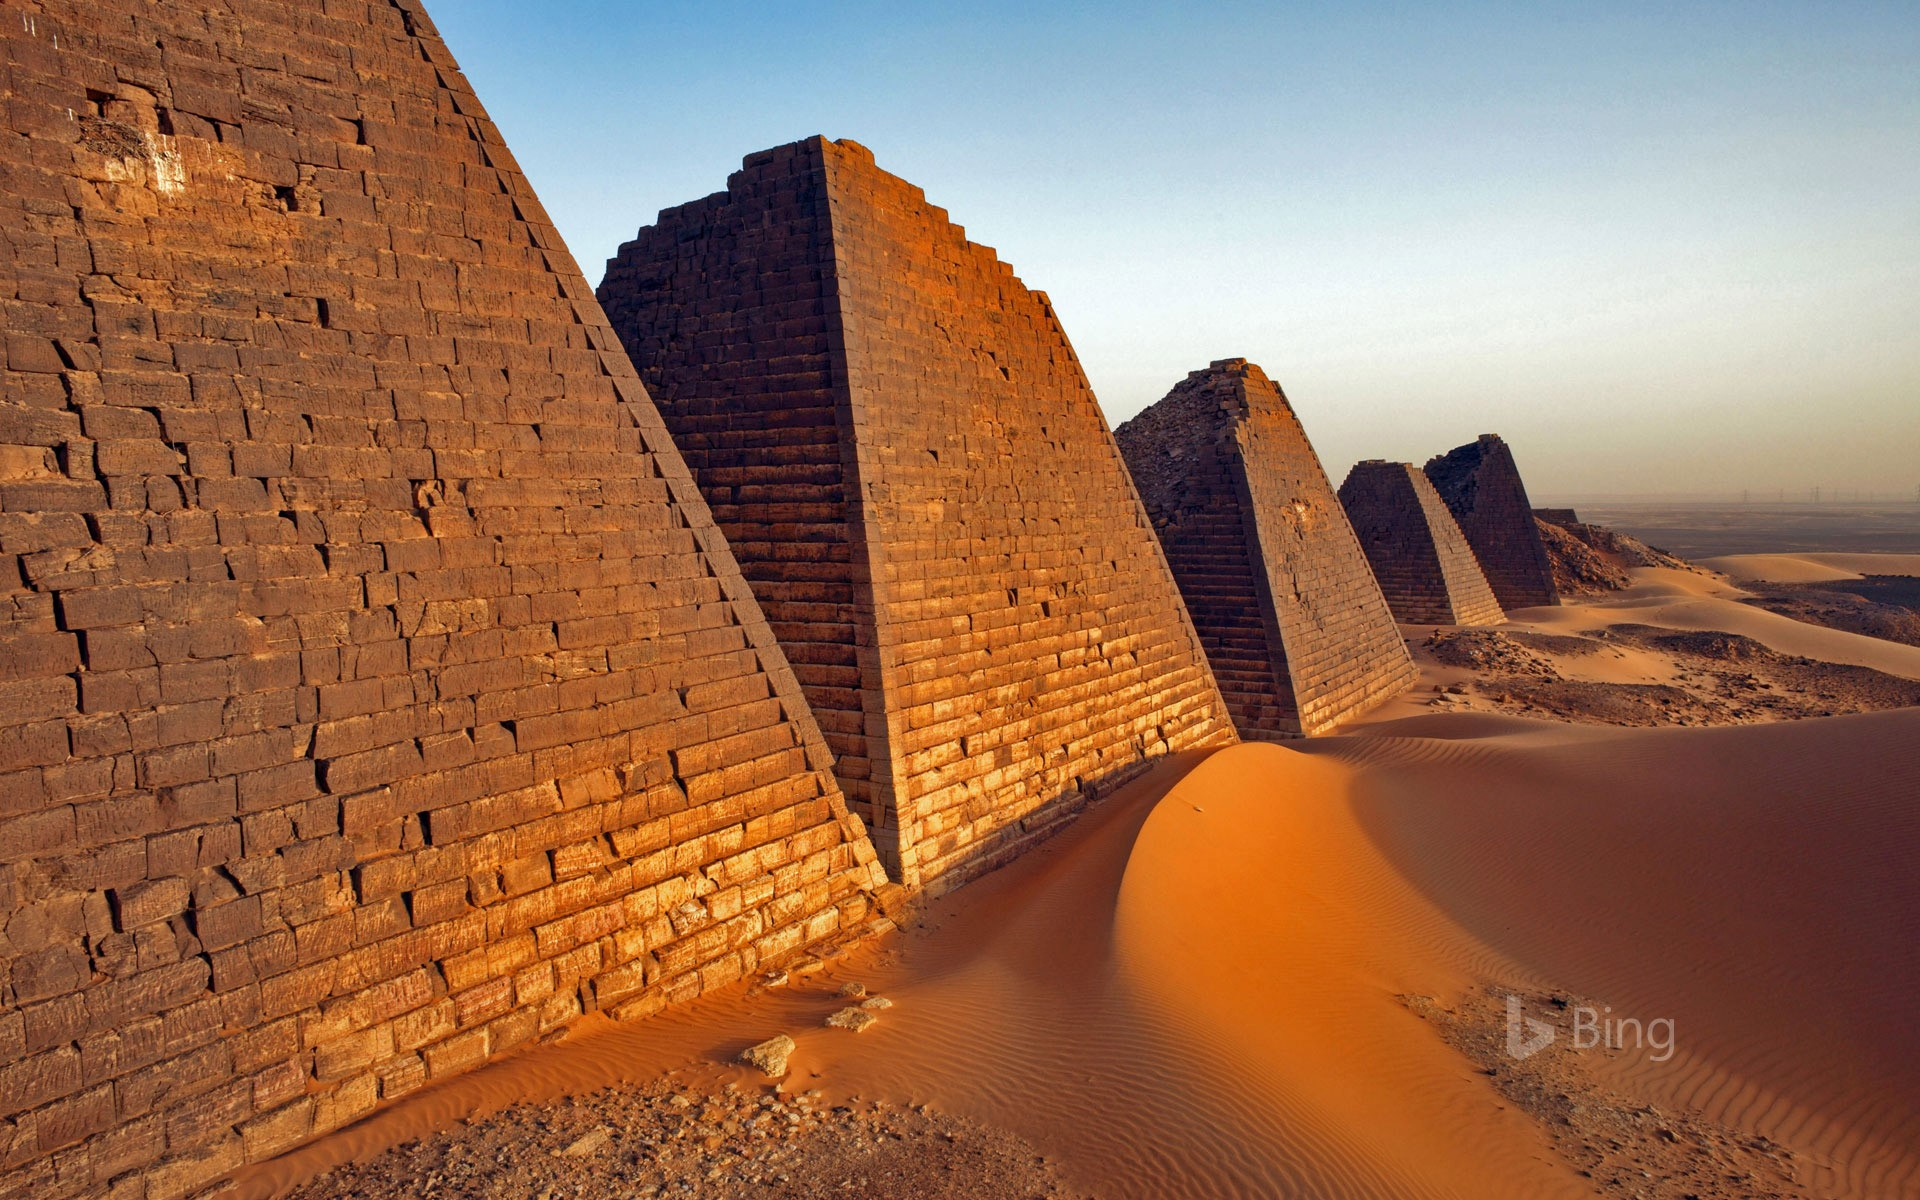 The Pyramids of Meroë in Sudan